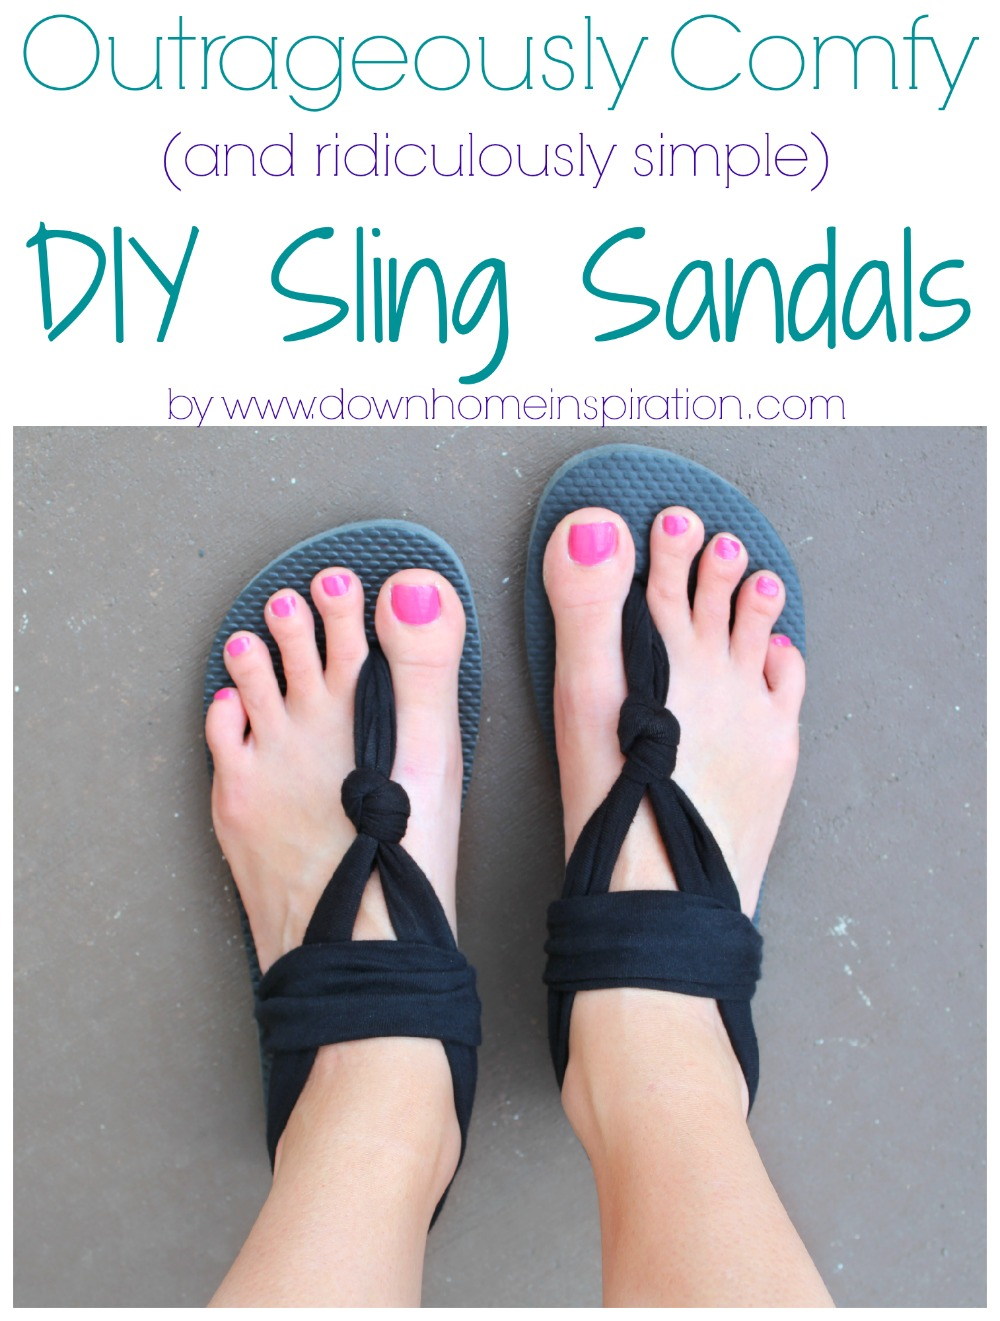 c2d7f22f6e58 Outrageously Comfy (and ridiculously simple) DIY Sling Sandals. Last summer  I bought a ...